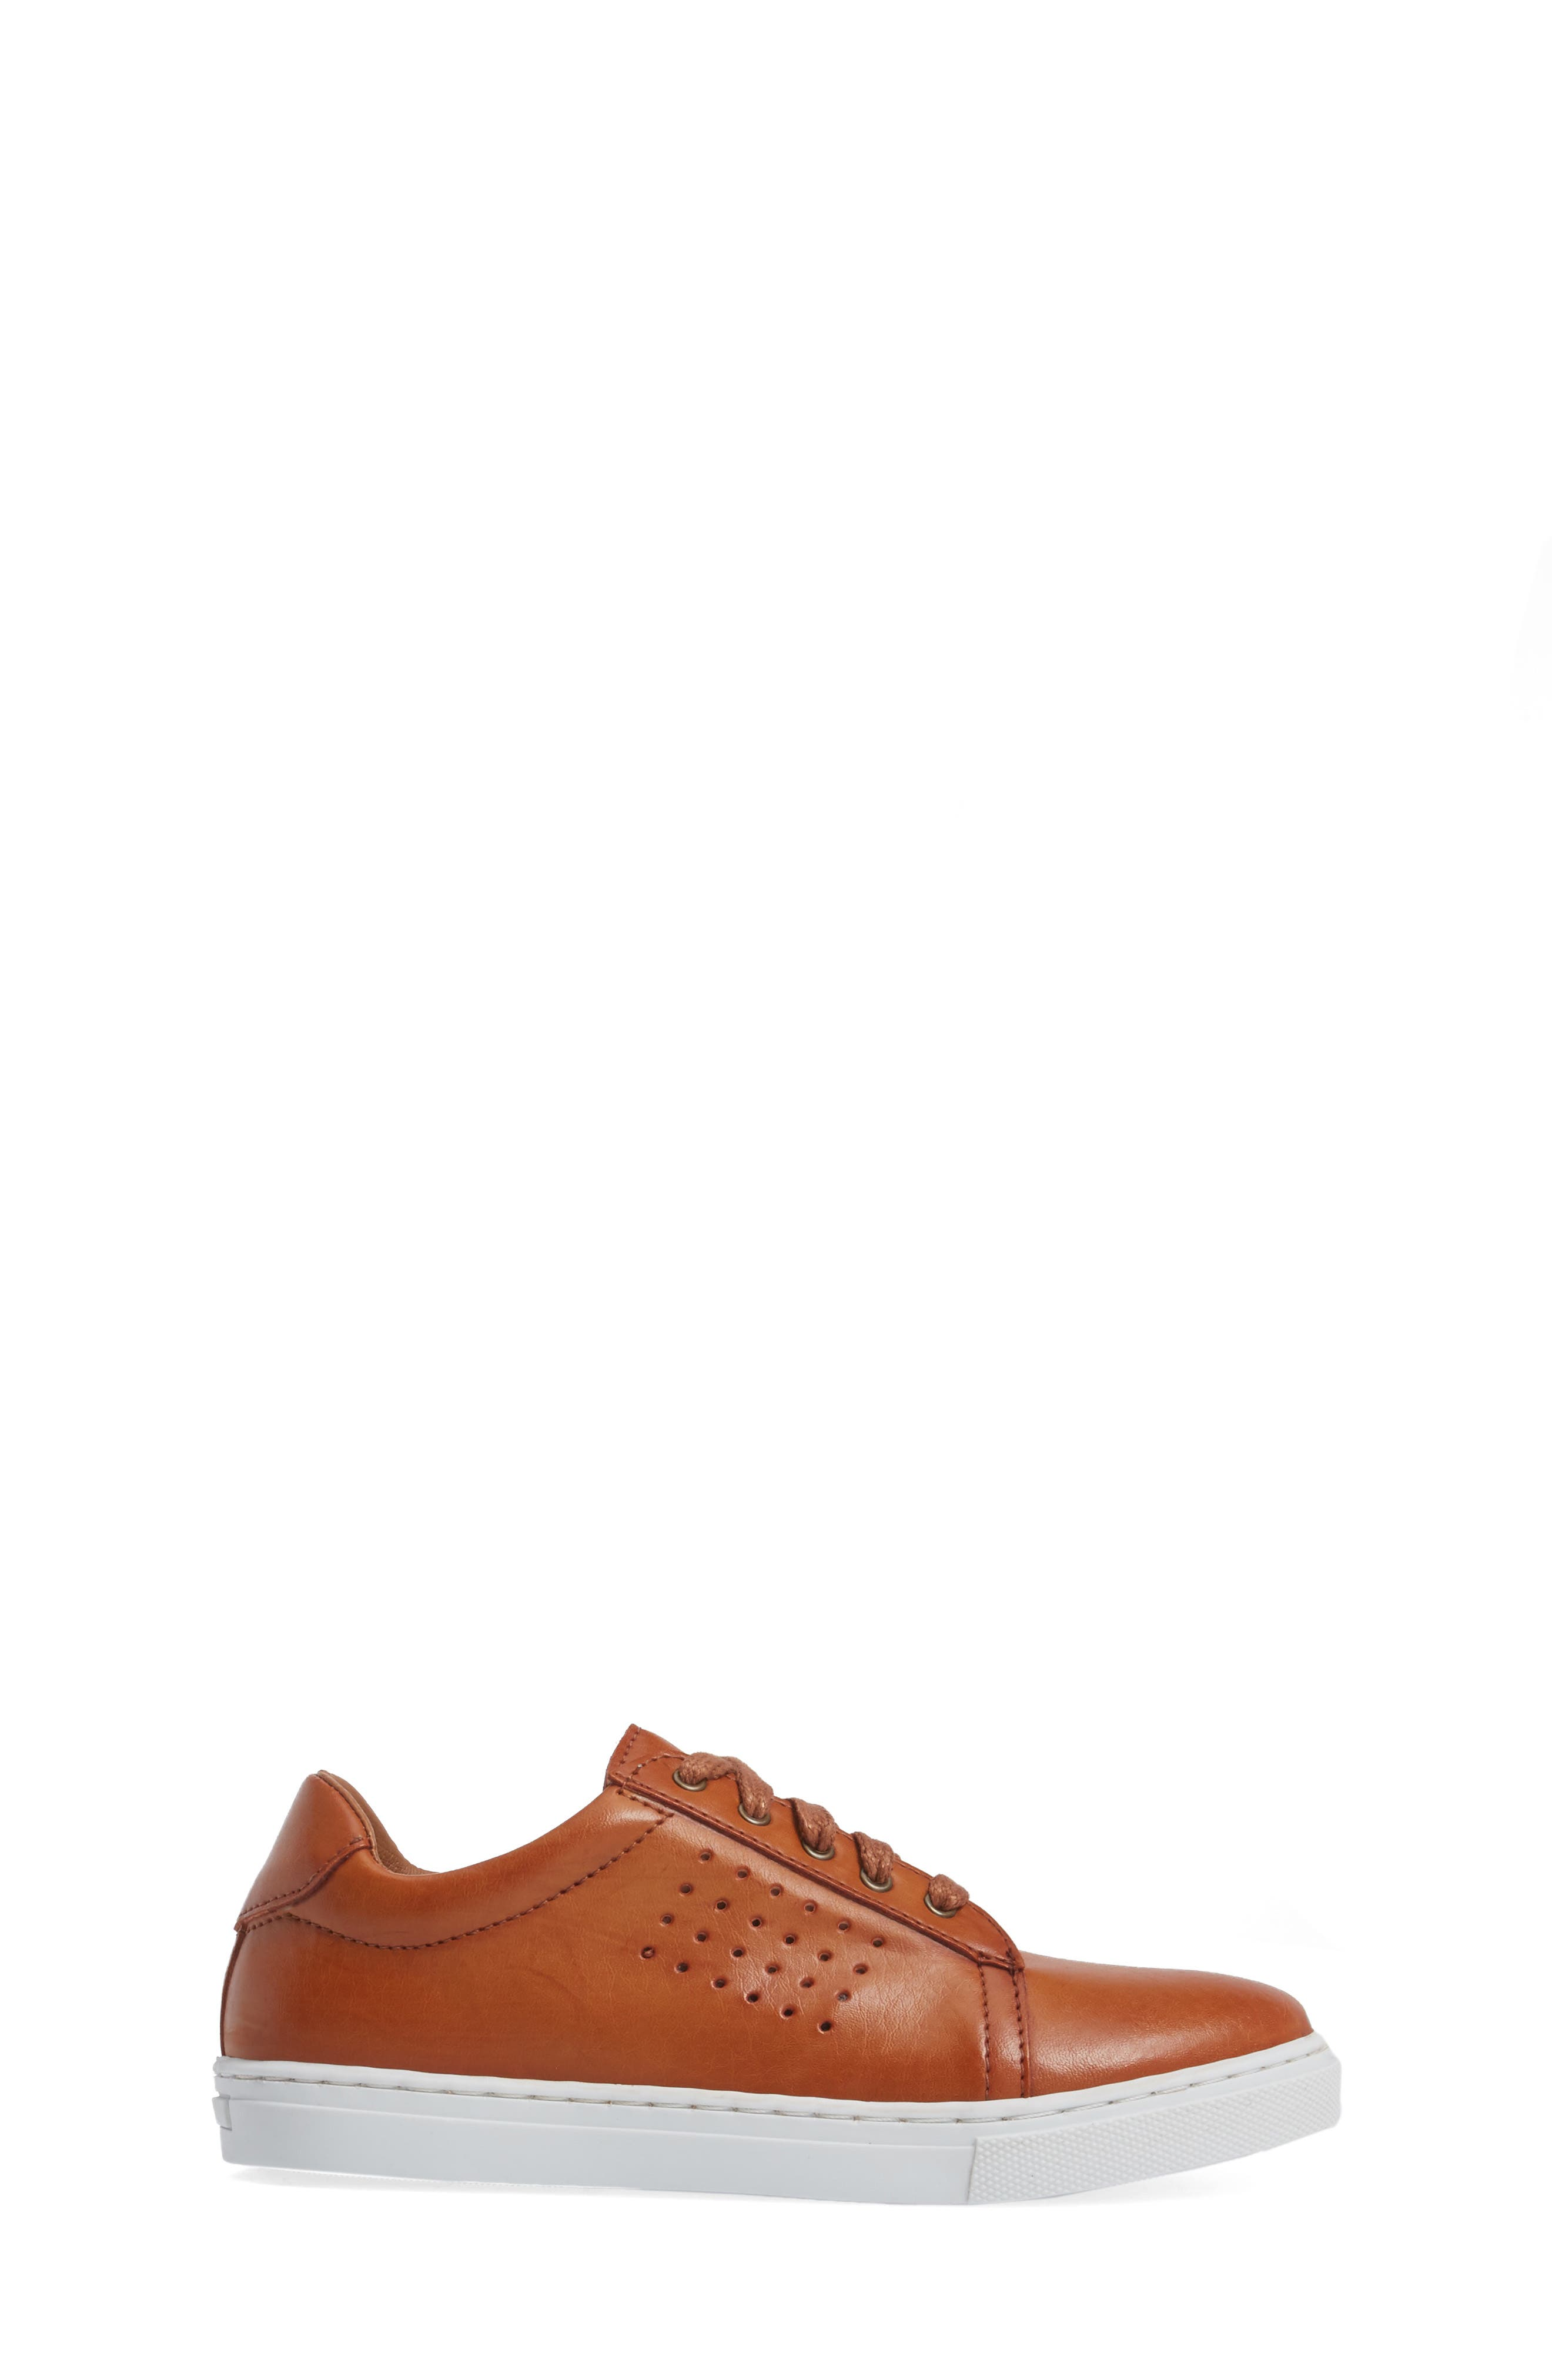 Grafte Perforated Sneaker,                             Alternate thumbnail 3, color,                             NATURALE